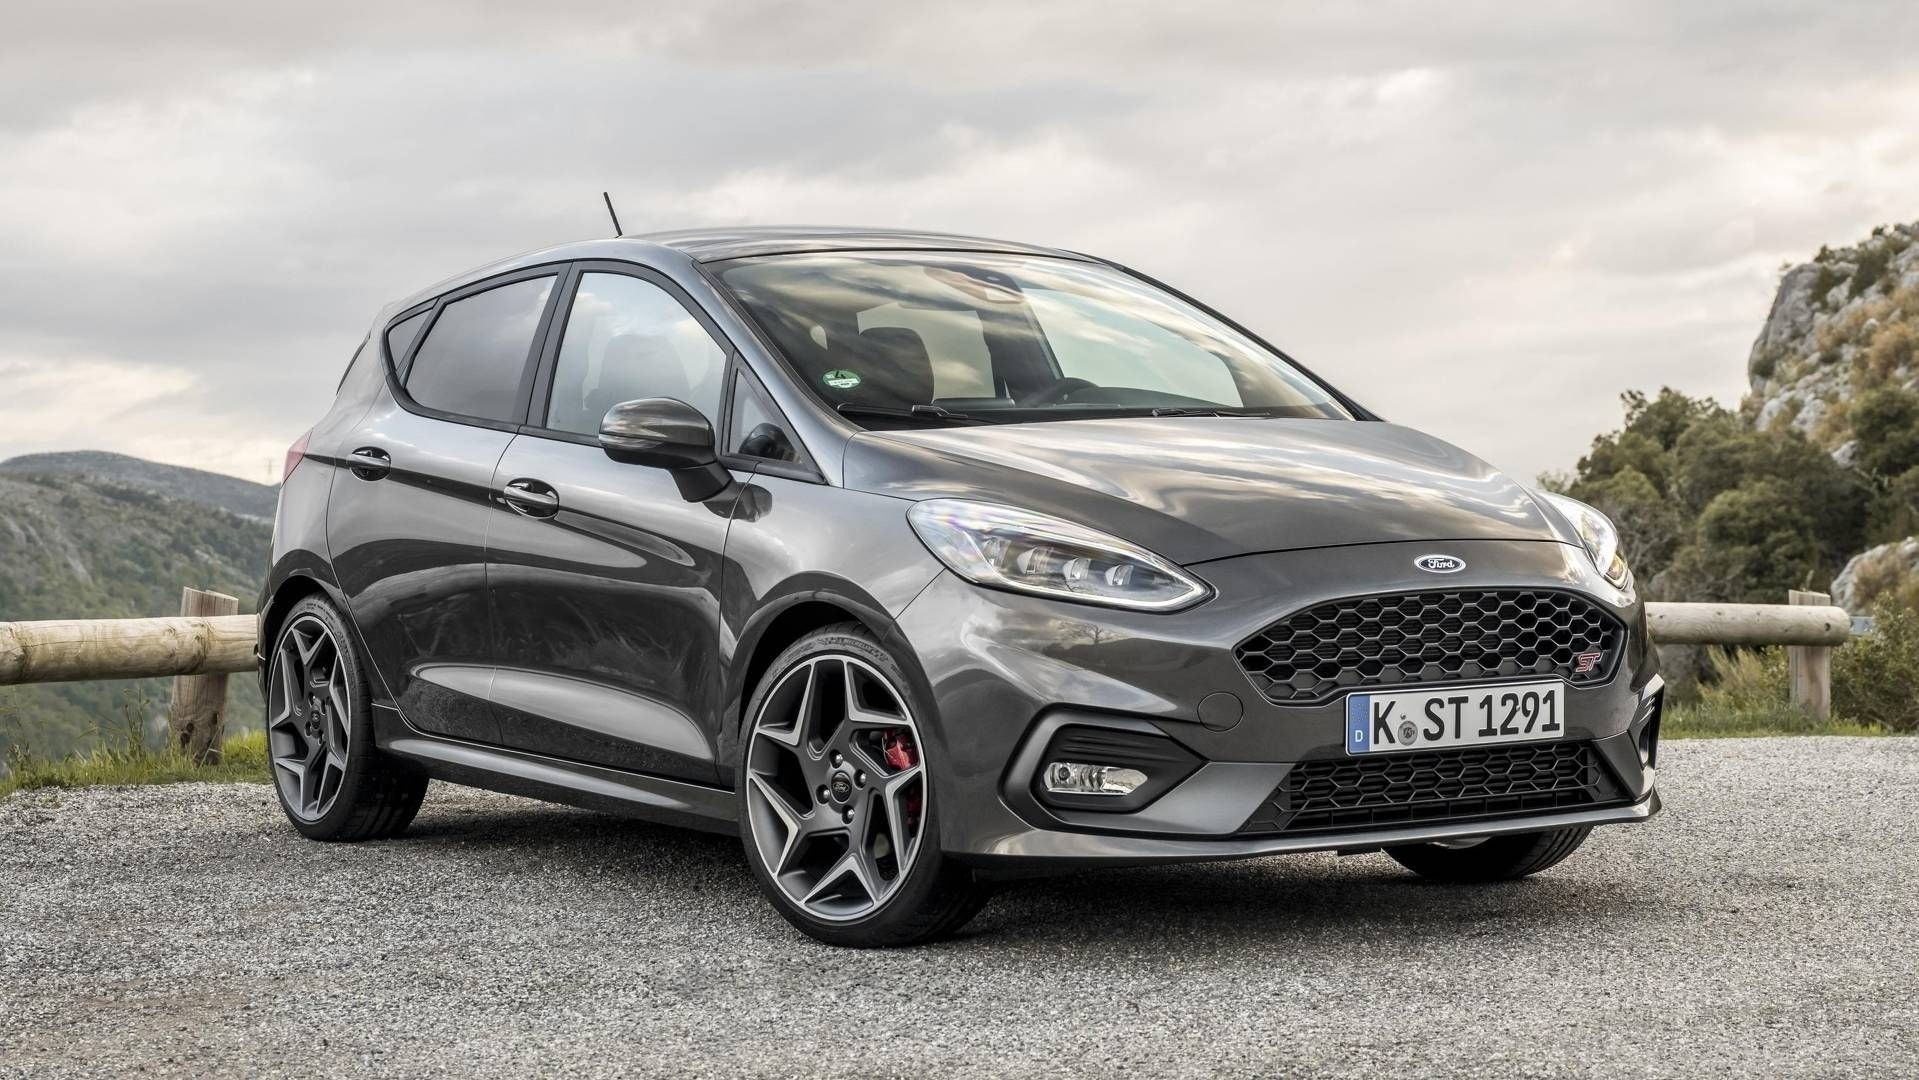 2020 Ford Fiesta St Rs Review And Specs Ford Fiesta St Ford Fiesta Fiesta St